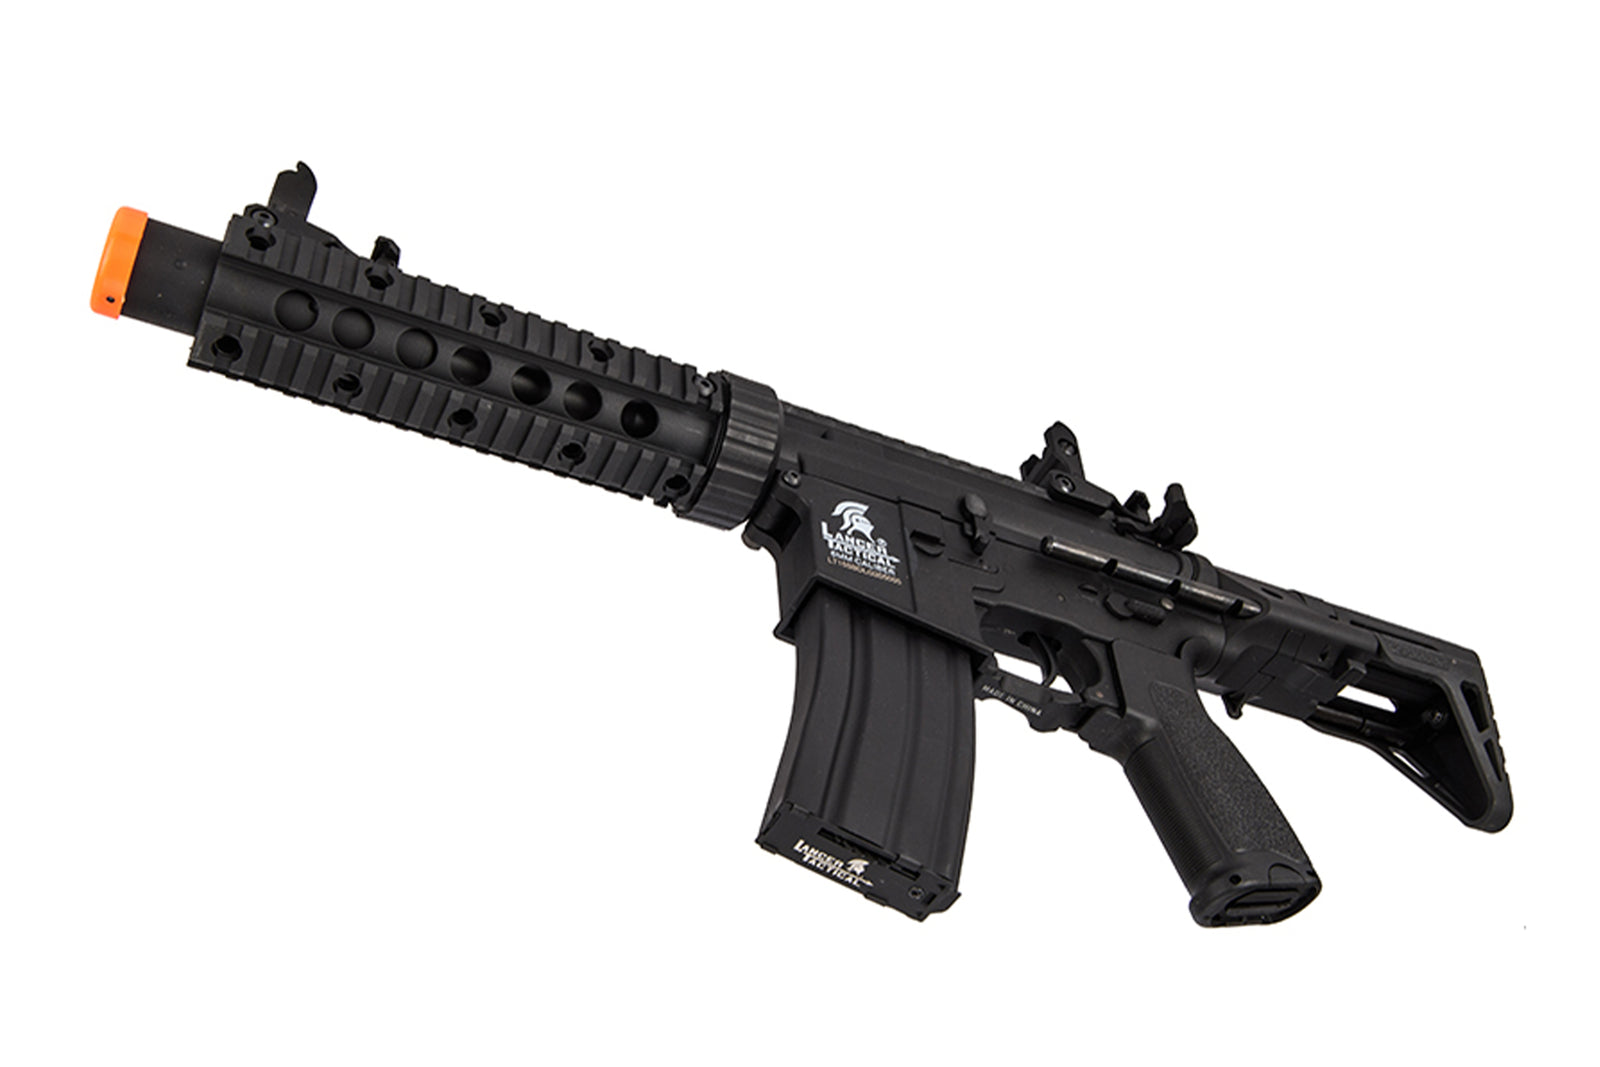 Lancer Tactical - LT-15SBDL-G2 - Gen 2 AEG Rifle w/ PDW Stock and Short Silencer - Black